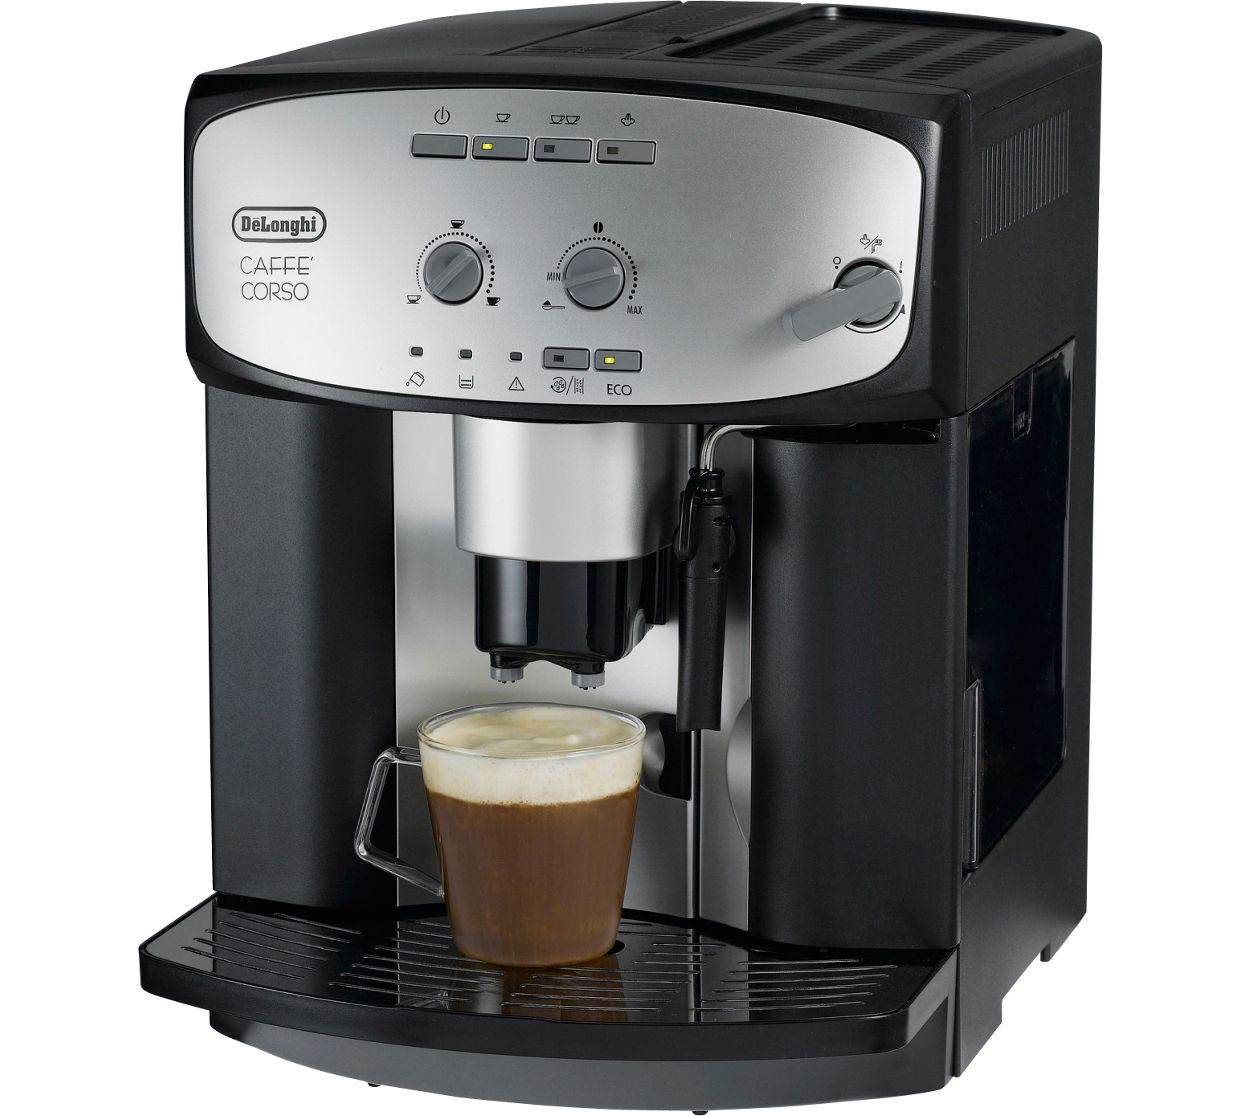 de longhi esam2800 cafe corso bean to cup coffee machine at argos. Black Bedroom Furniture Sets. Home Design Ideas